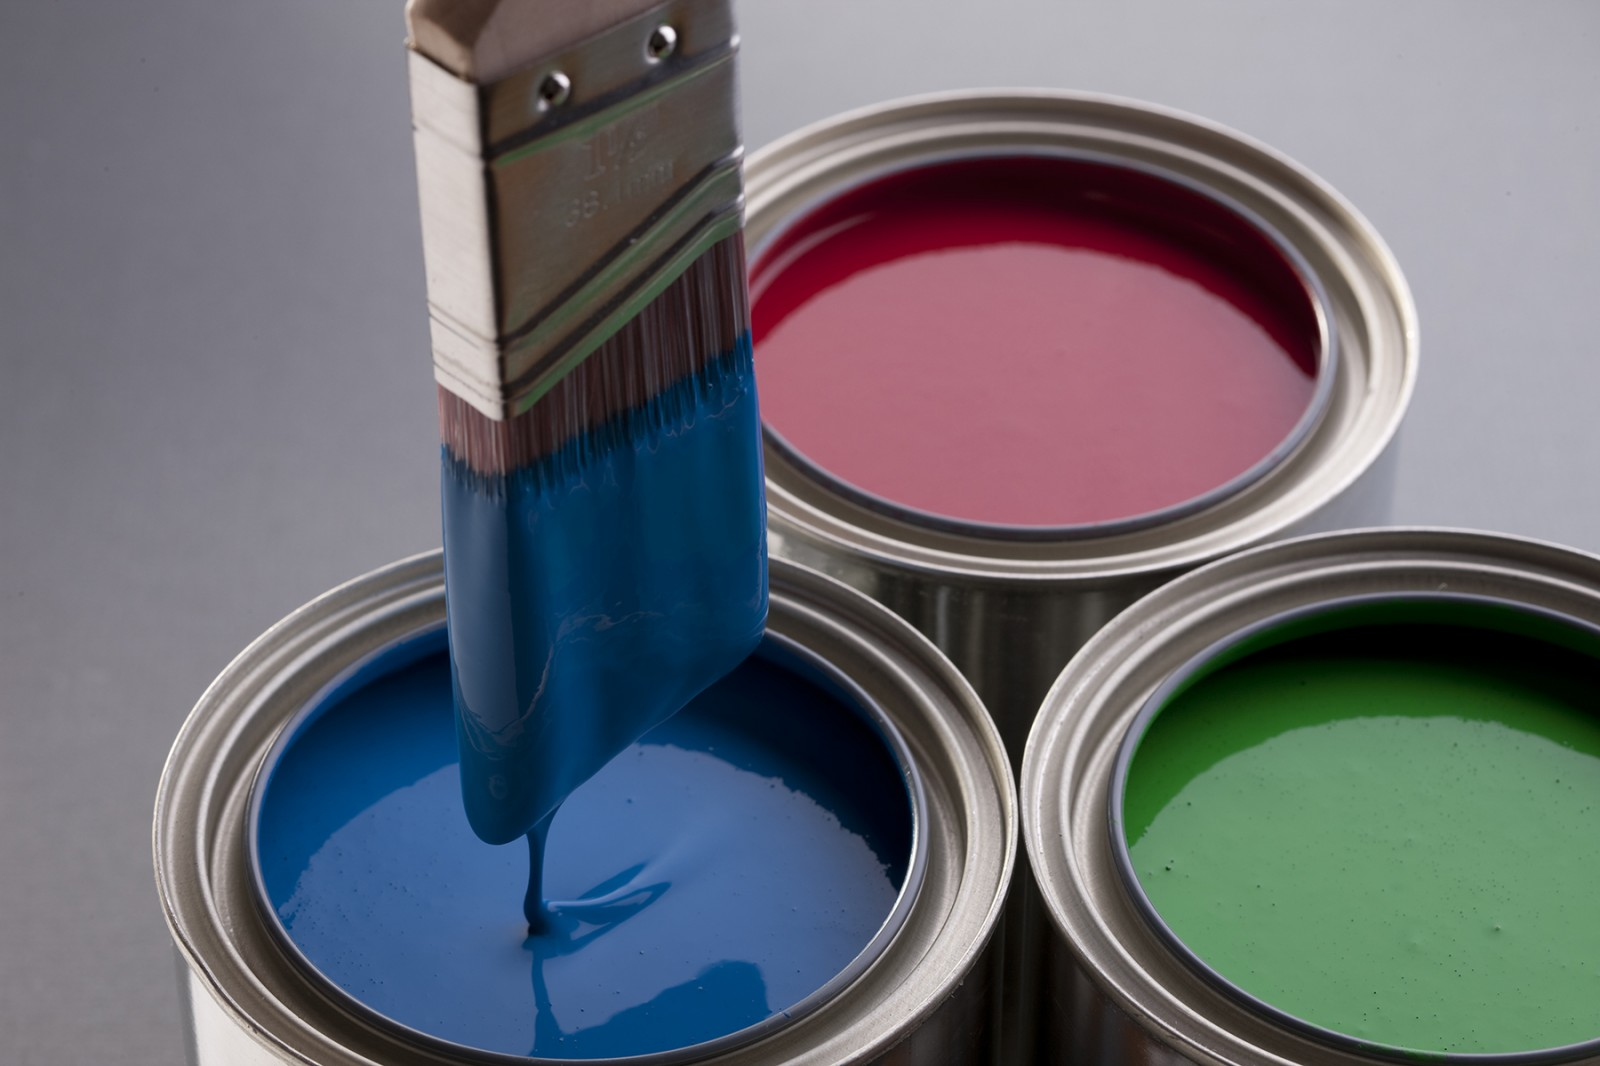 paint industry buying behaviour About our industry the paint and coatings industry is an important and dynamic part of our nation's economy, and plays a key role in creating products that help preserve and protect everything, from our every day objects to our most important infrastructure.